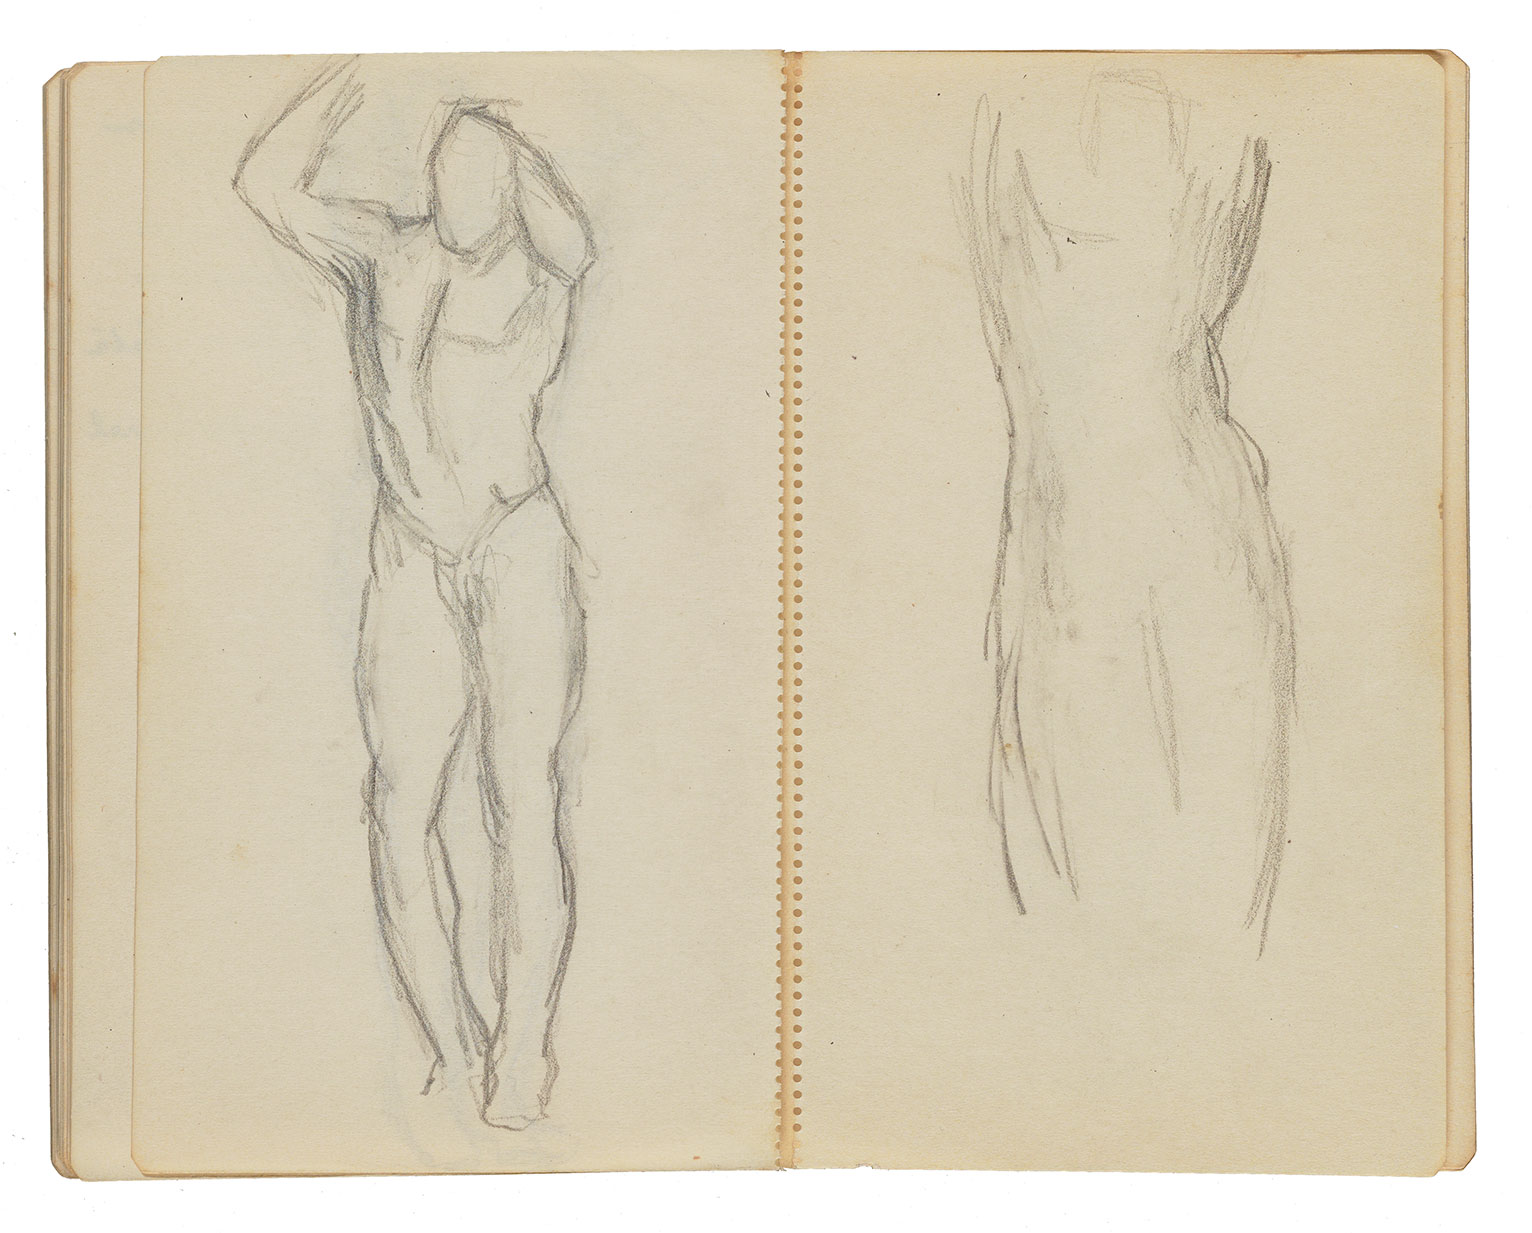 Two pages of anatomical drawings by Gertrude Vanderbilt Whitney